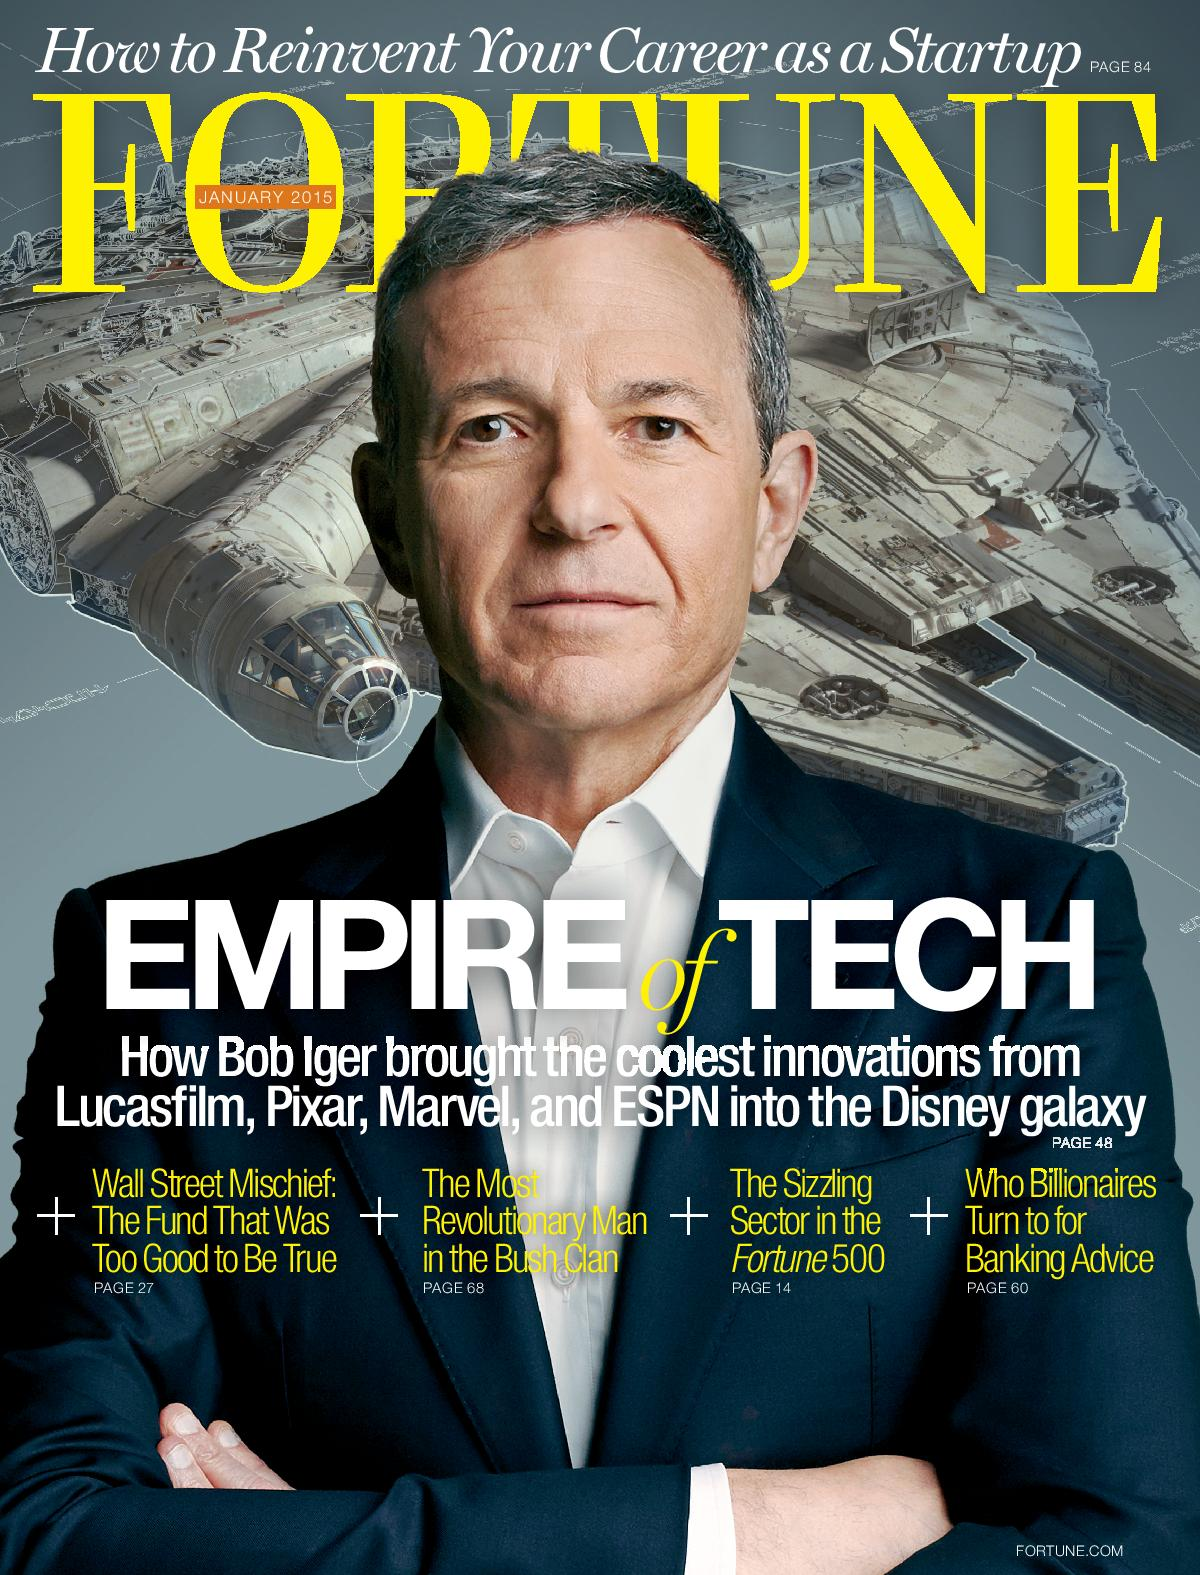 Fortune's January 2015 cover